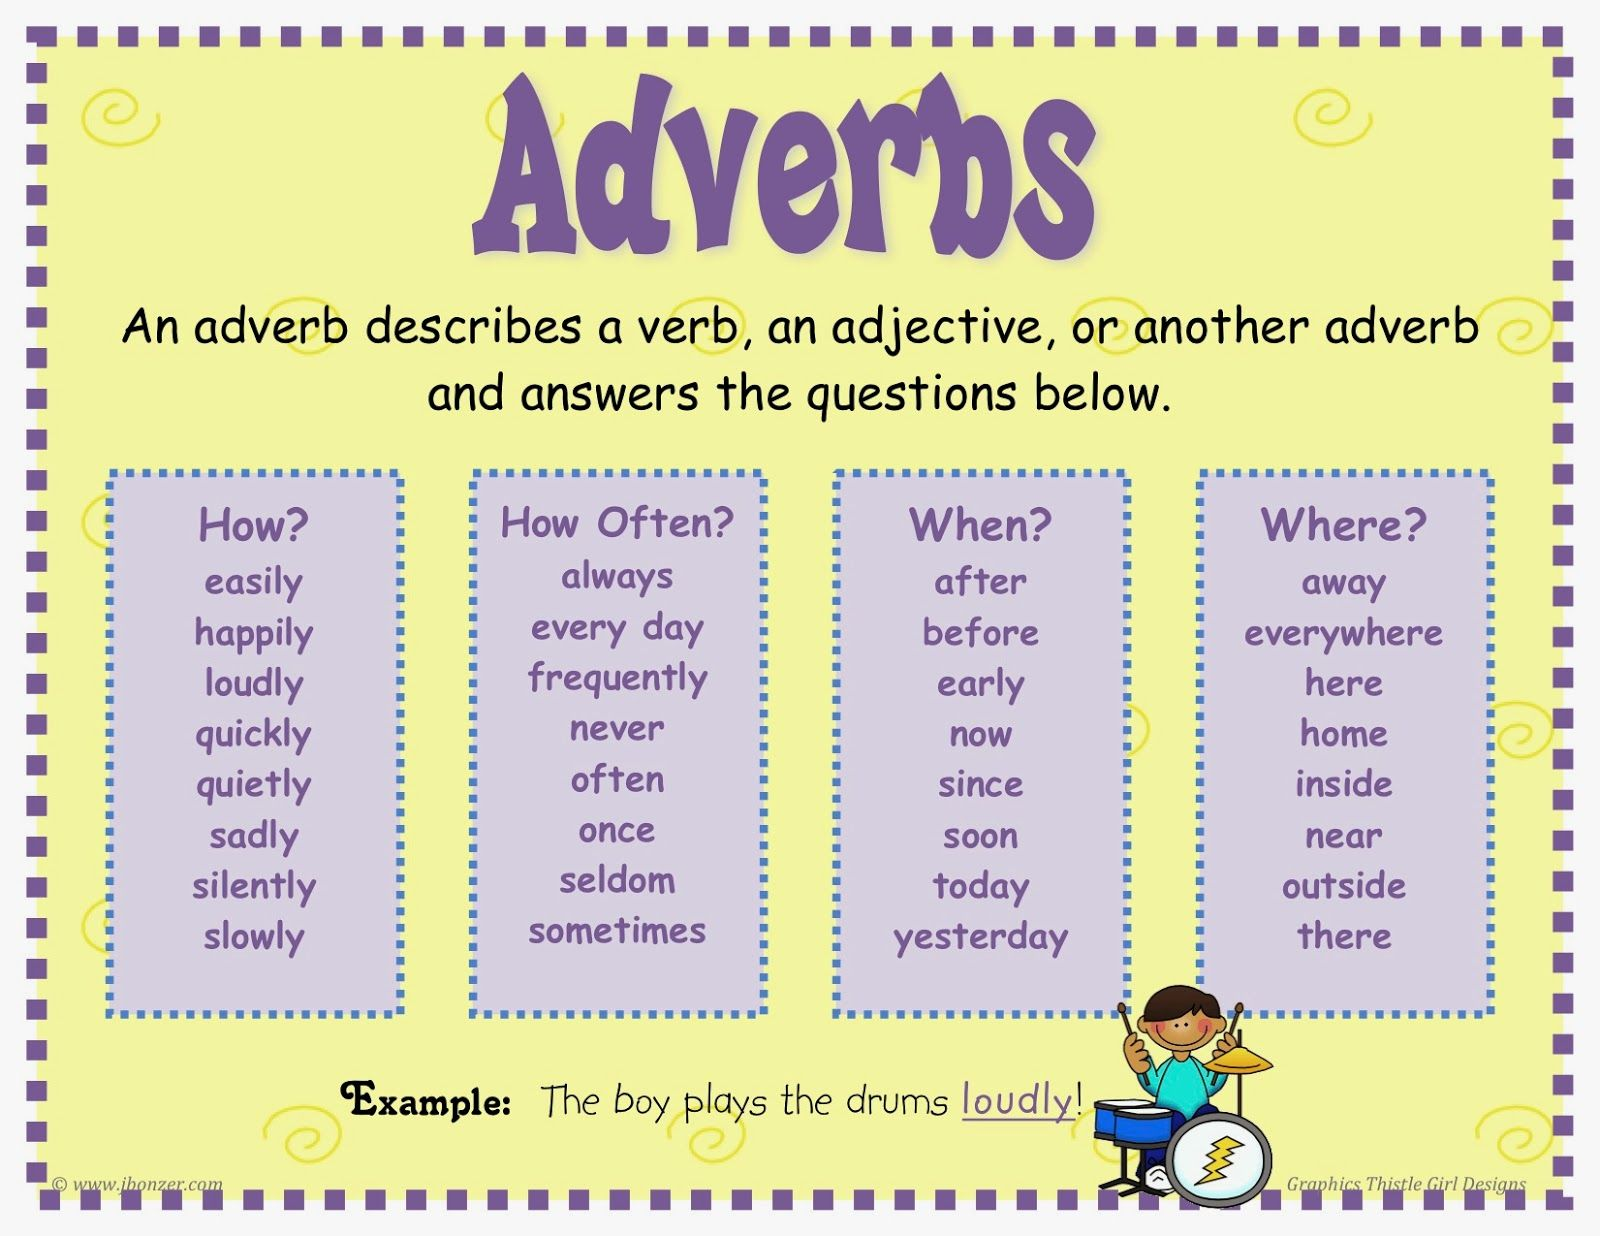 Adverbs Free Ctet Exam Notes Cbse Notes Tet Practice